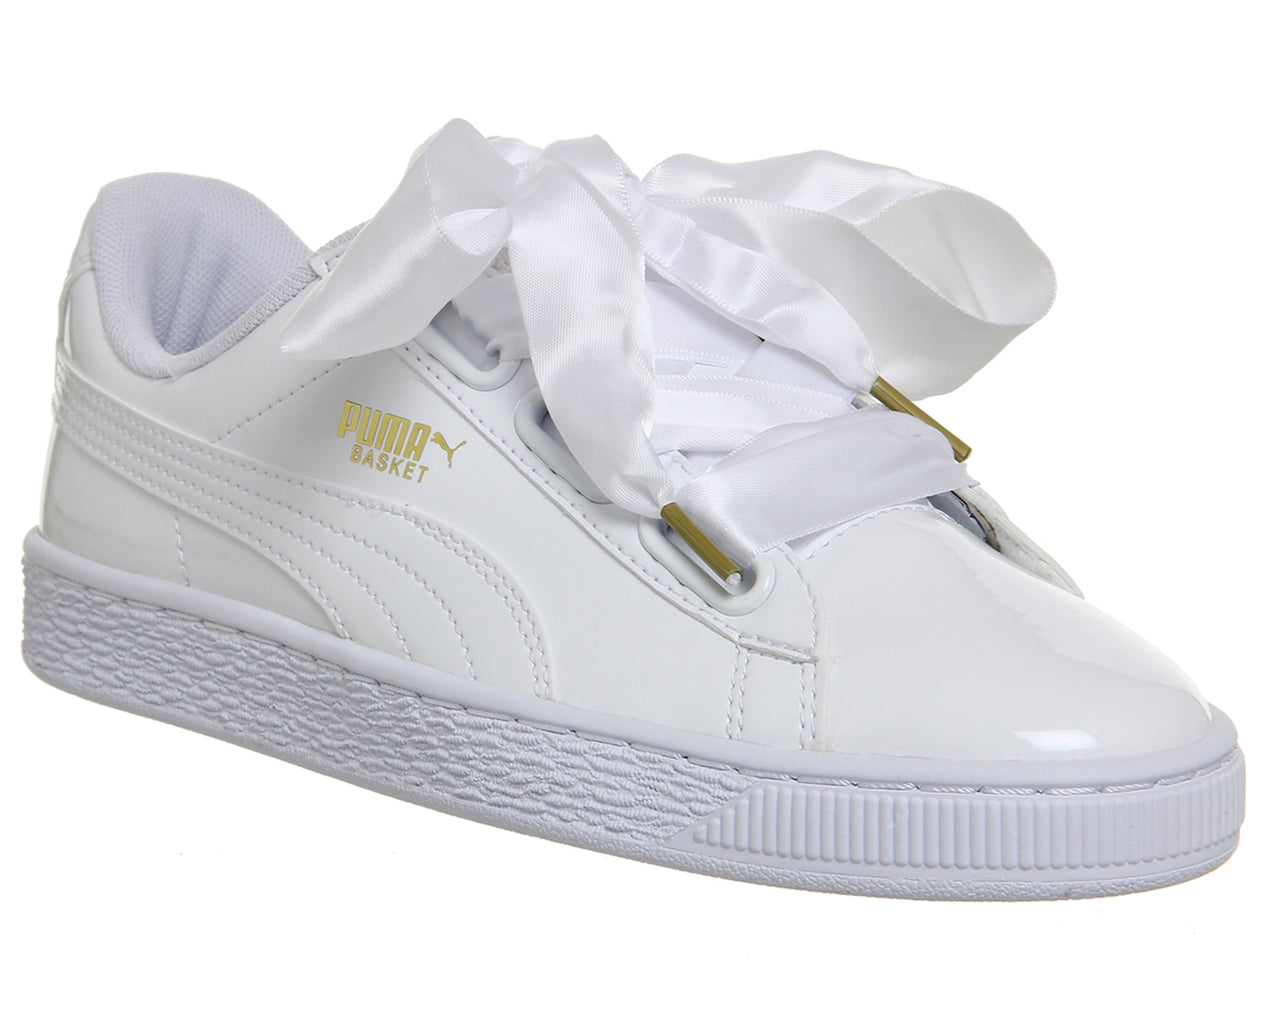 4649877d30 Womens Puma Basket Heart Trainers White Patent